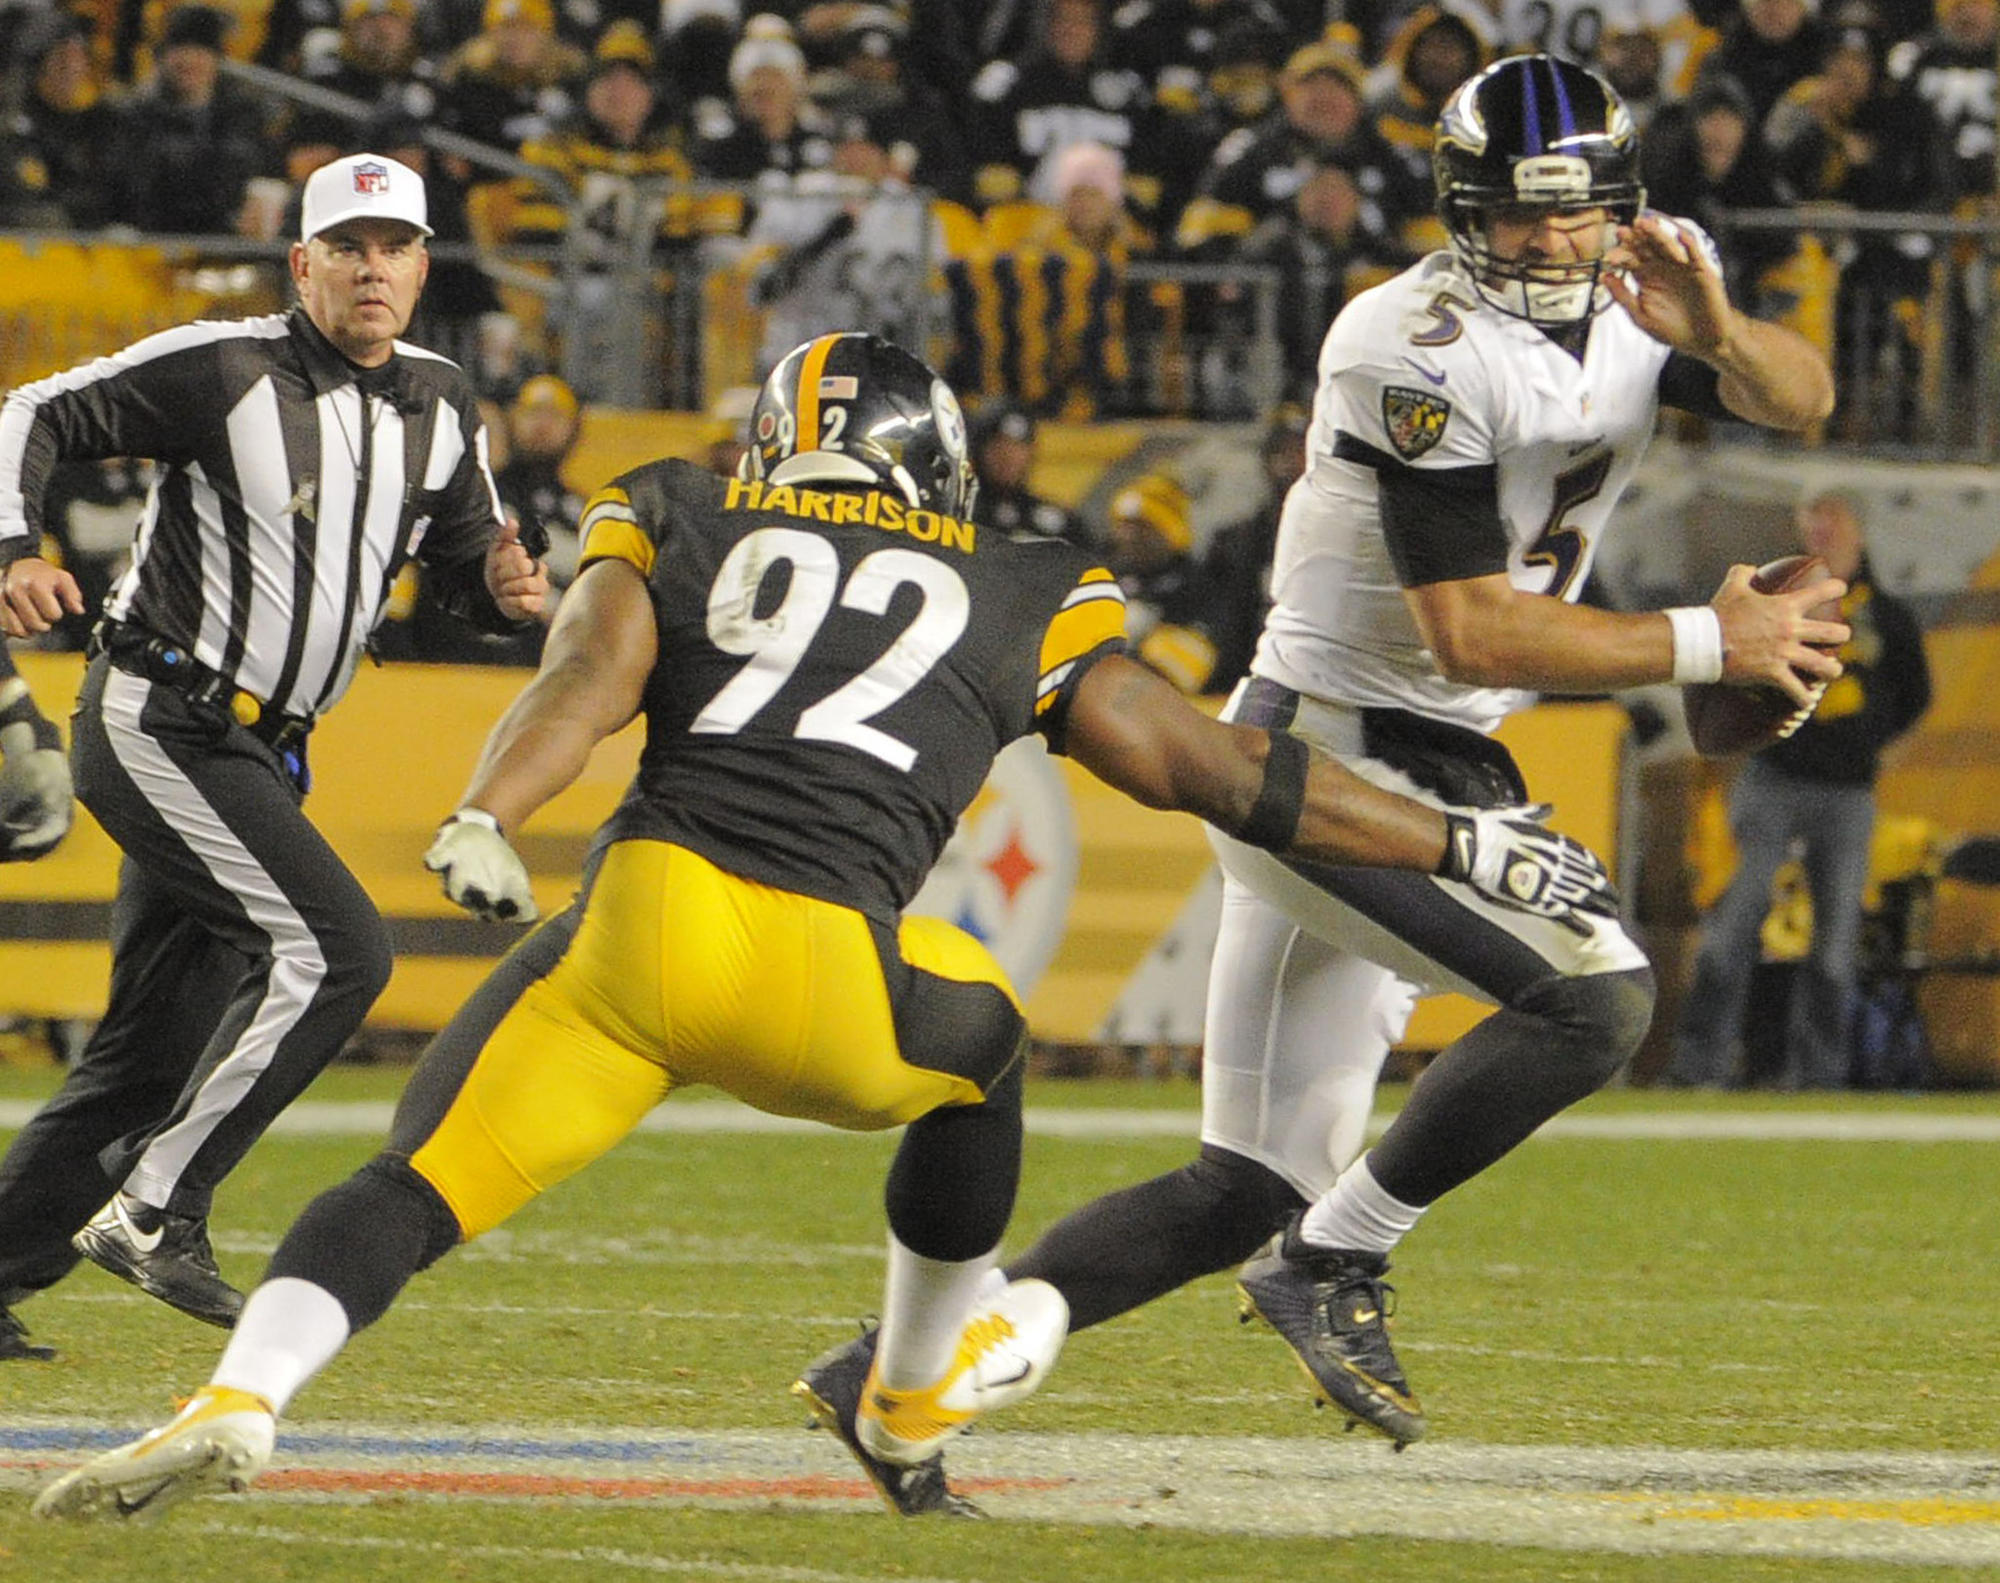 da906c55e Linebacker James Harrison, who was briefly with the Ravens then tormented  them as a Steeler, announces retirement - Baltimore Sun